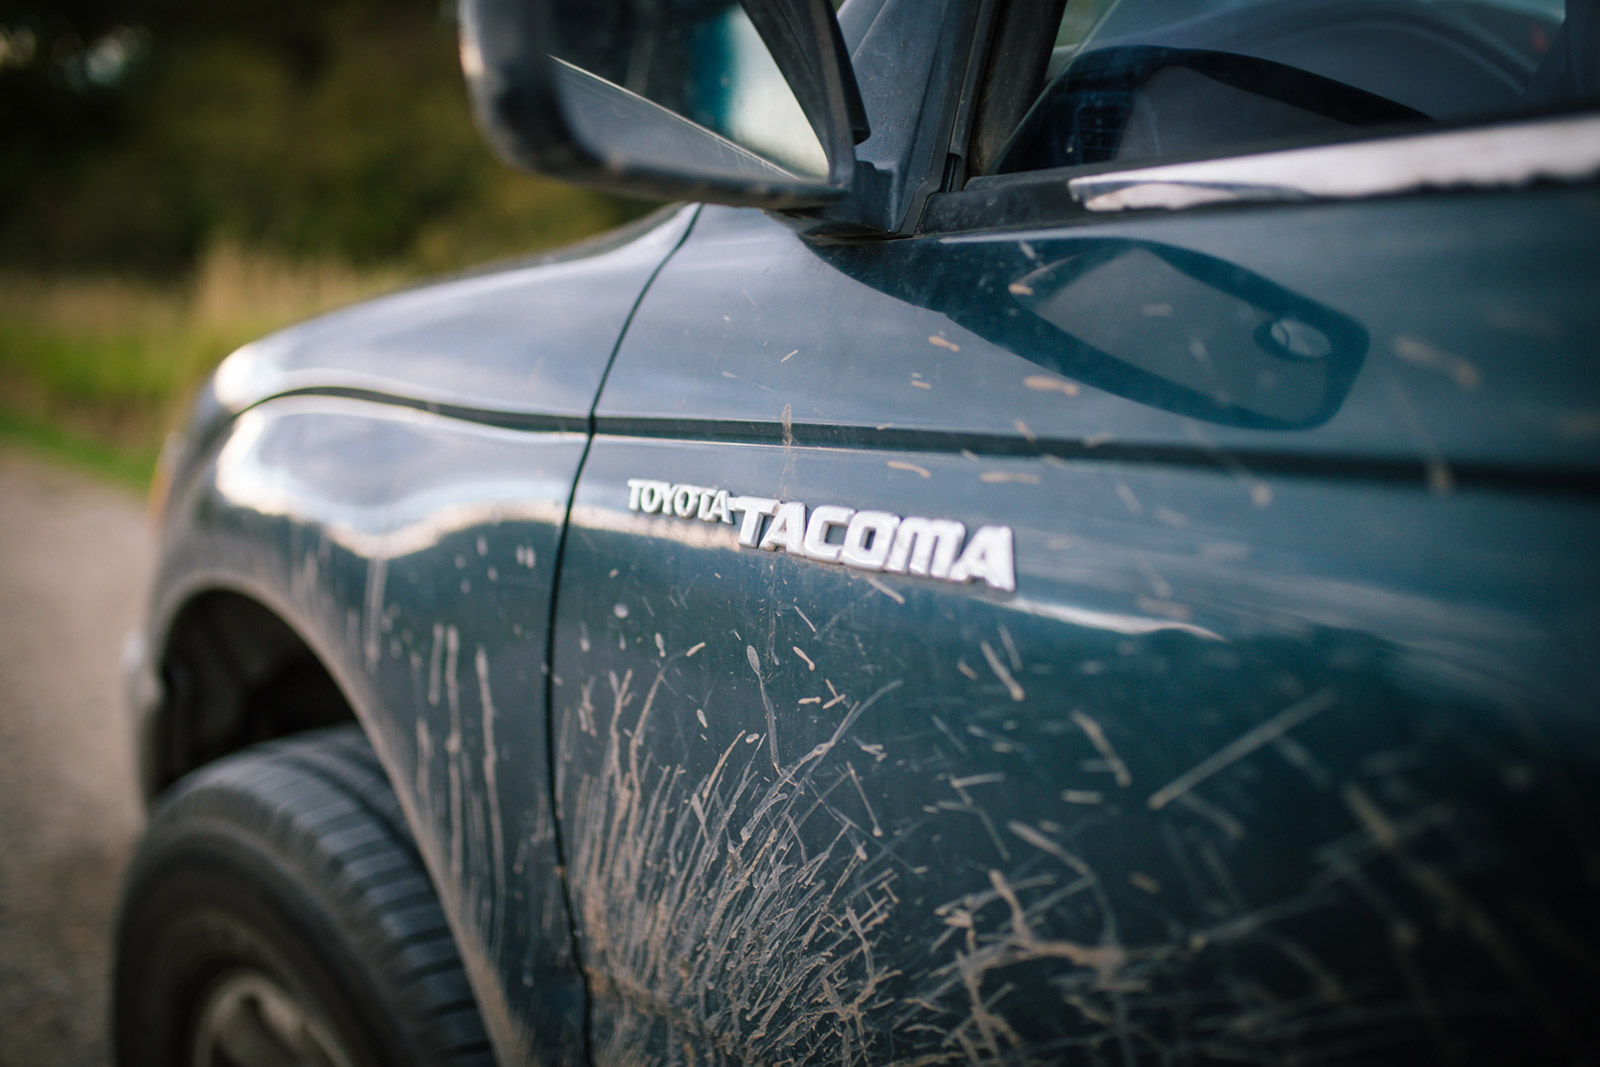 The side of Patrick Burr's Toyota Tacoma in this Montana photography session.